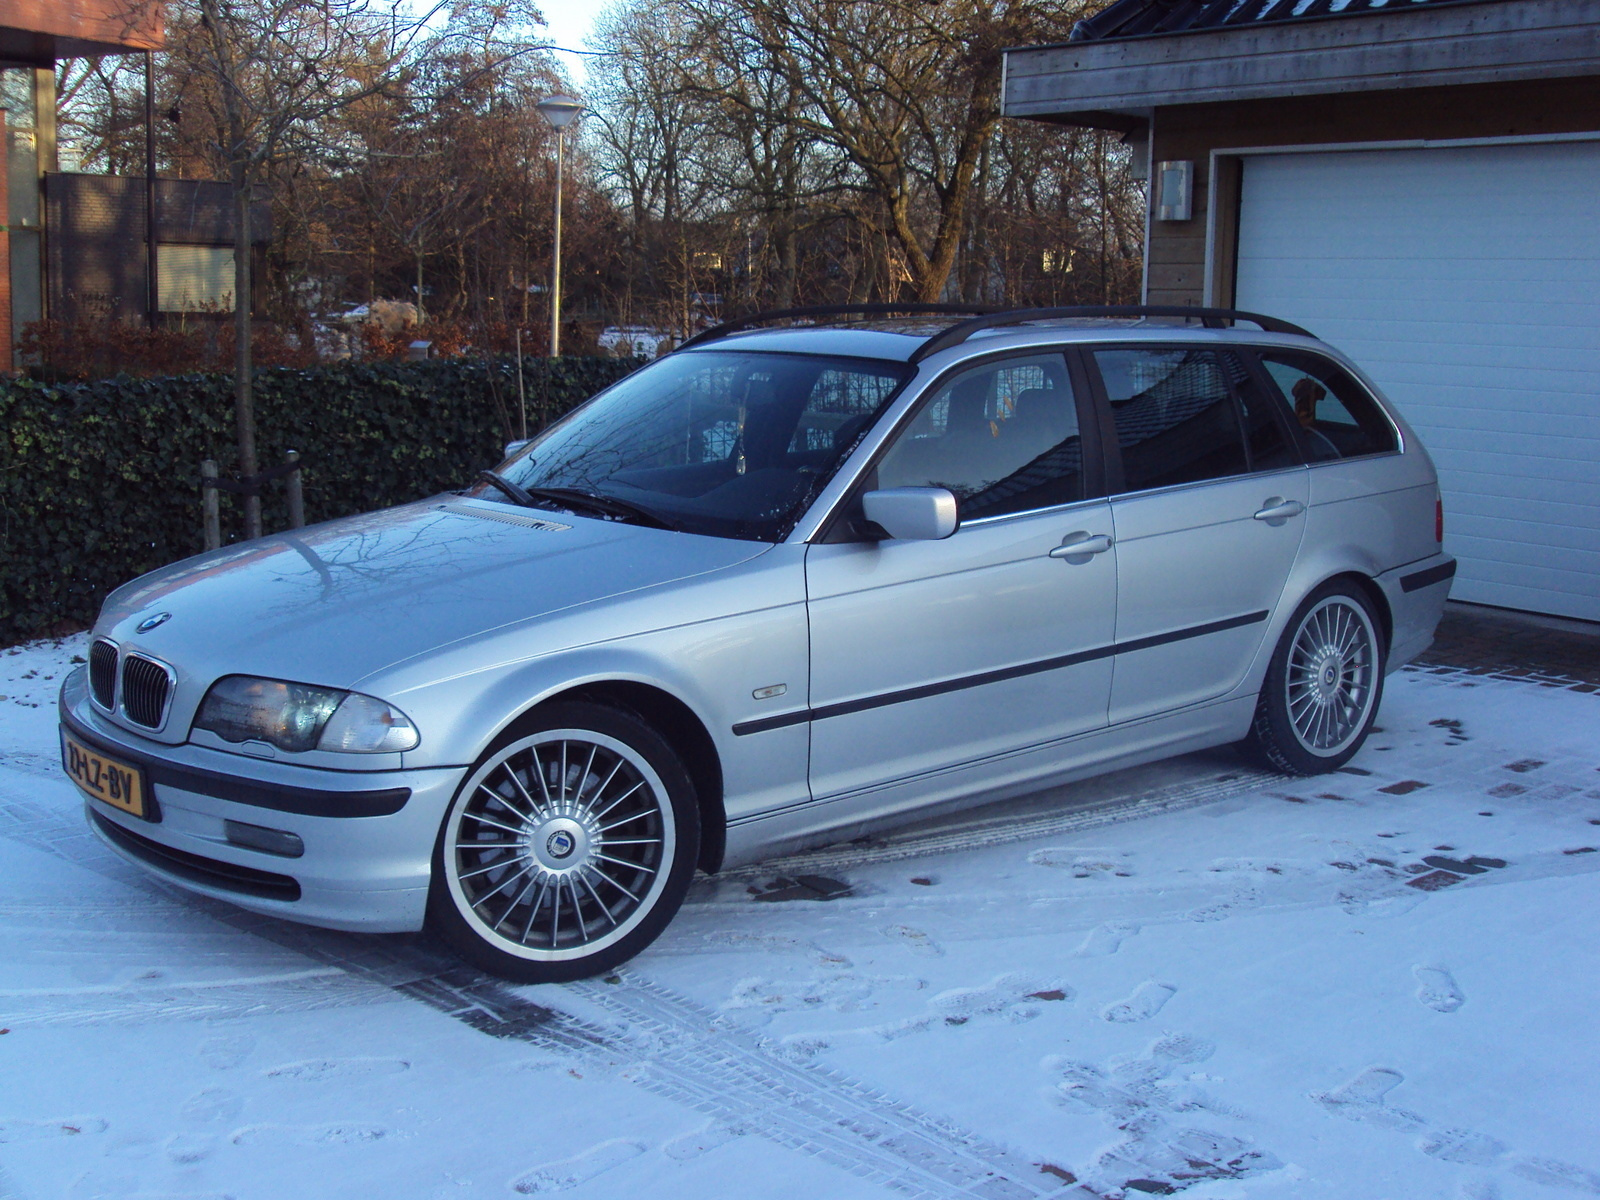 BMW 3 Series Questions - How Long Does Engine Last on 92 325i - CarGurus